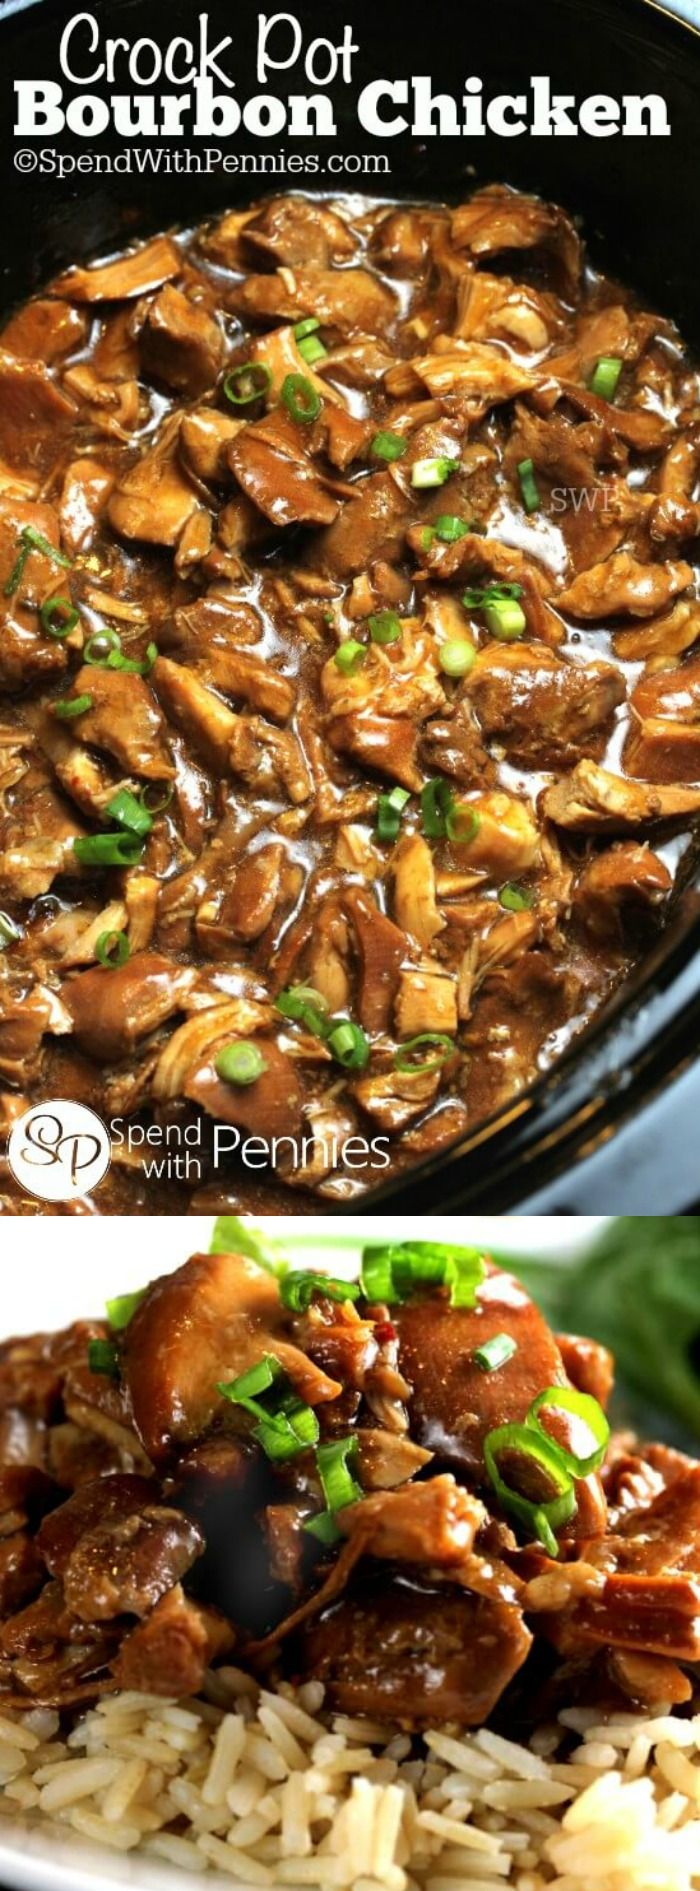 This Crock Pot Bourbon Chicken from Spend with Pennies is a simple and easy dinner to make for your family. The best part is that it tastes amazing and you're family will think you slaved over it all day long!